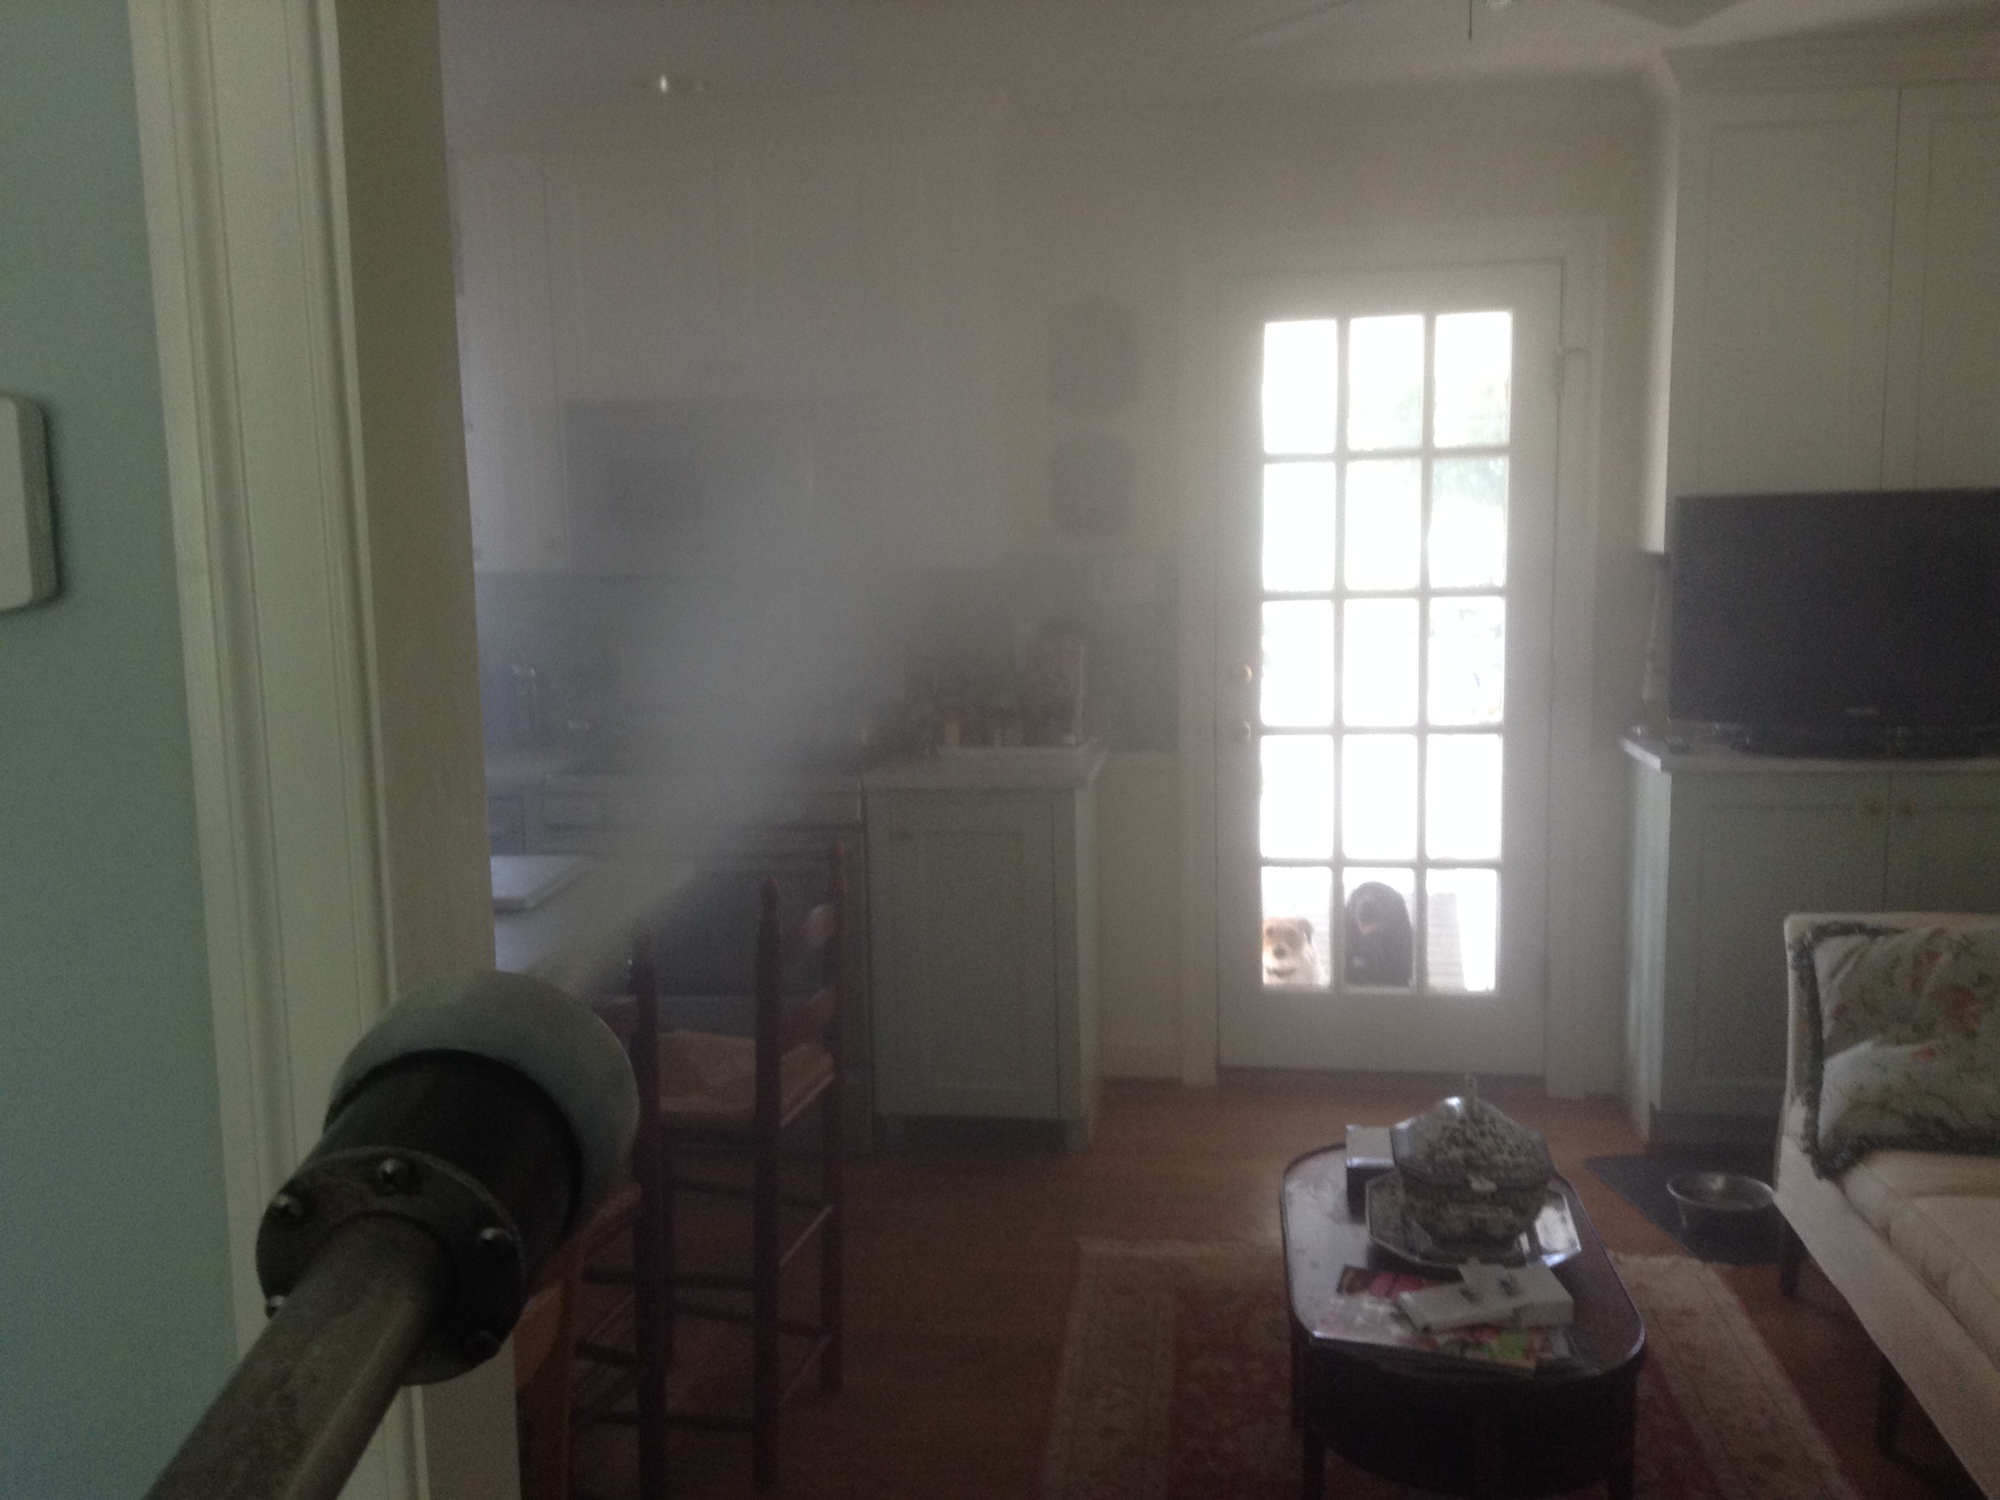 Residential Disinfection